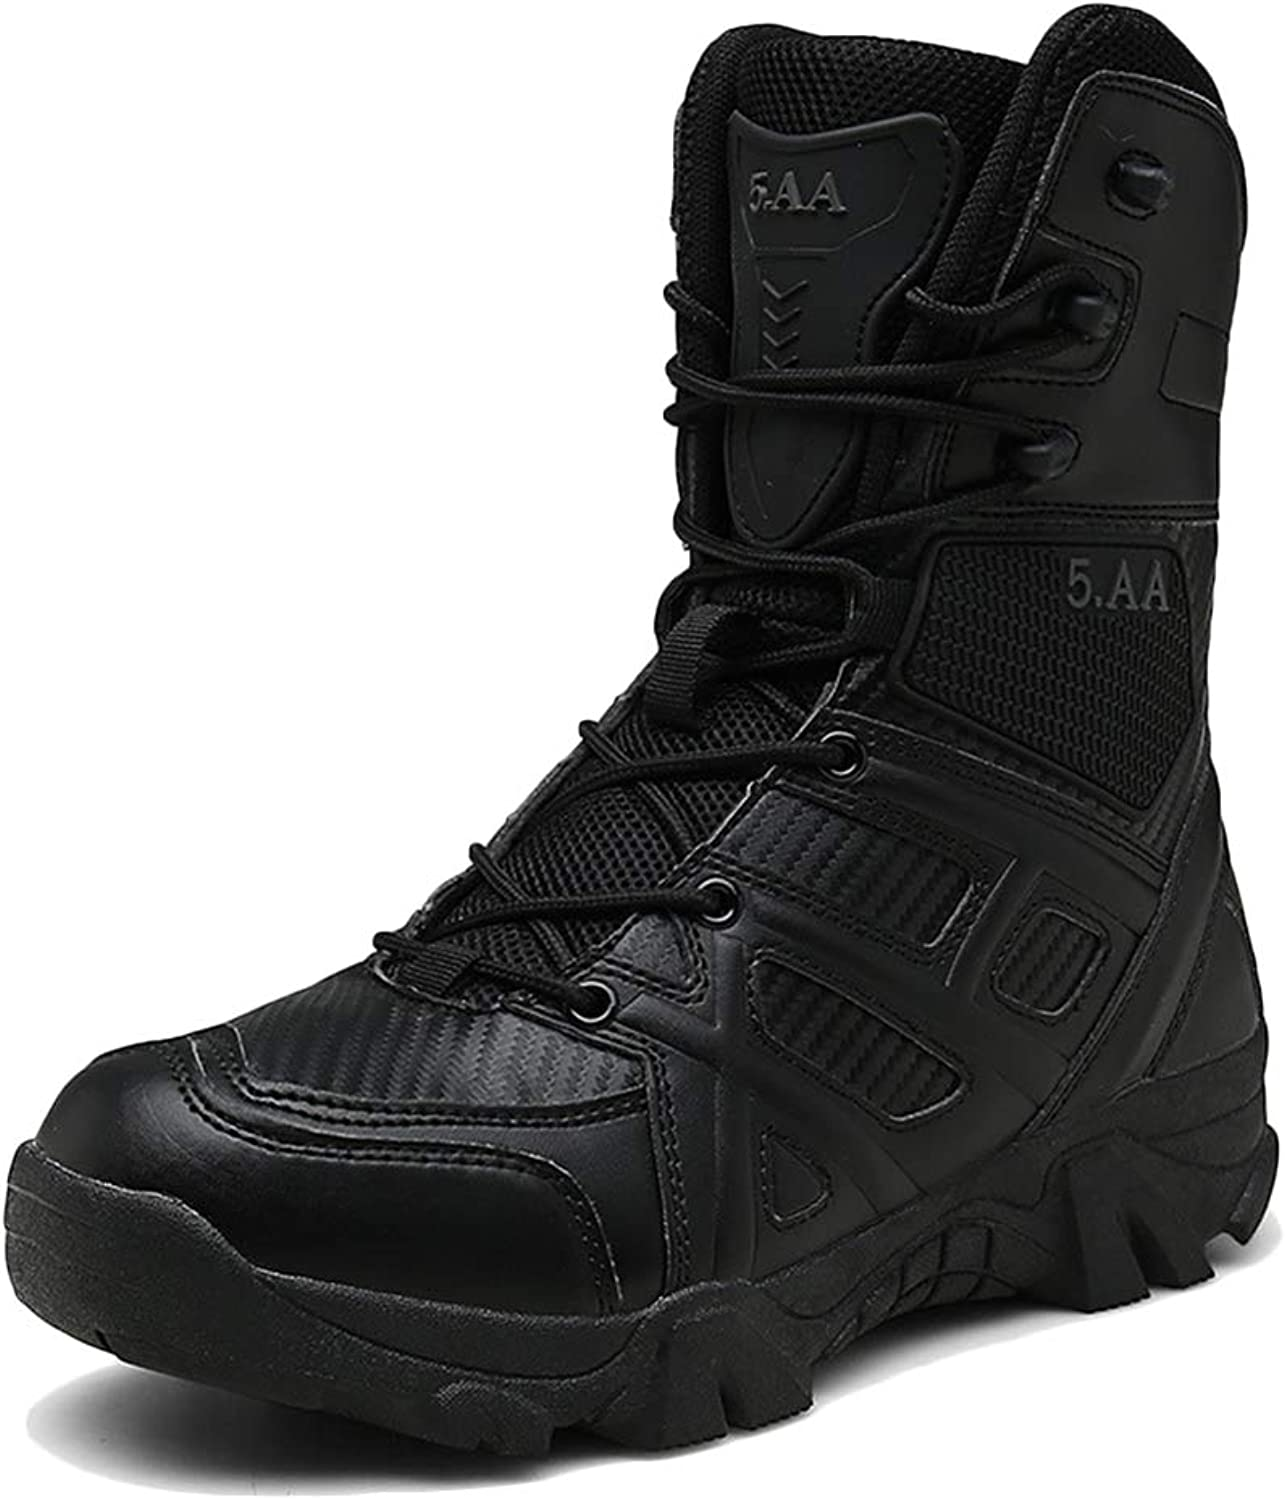 LIUYL Men's Desert Combat Boot Military Army Tactical Hiking shoes Side Zip leather High Top shoes Trekking Security Police Boot,Black-43